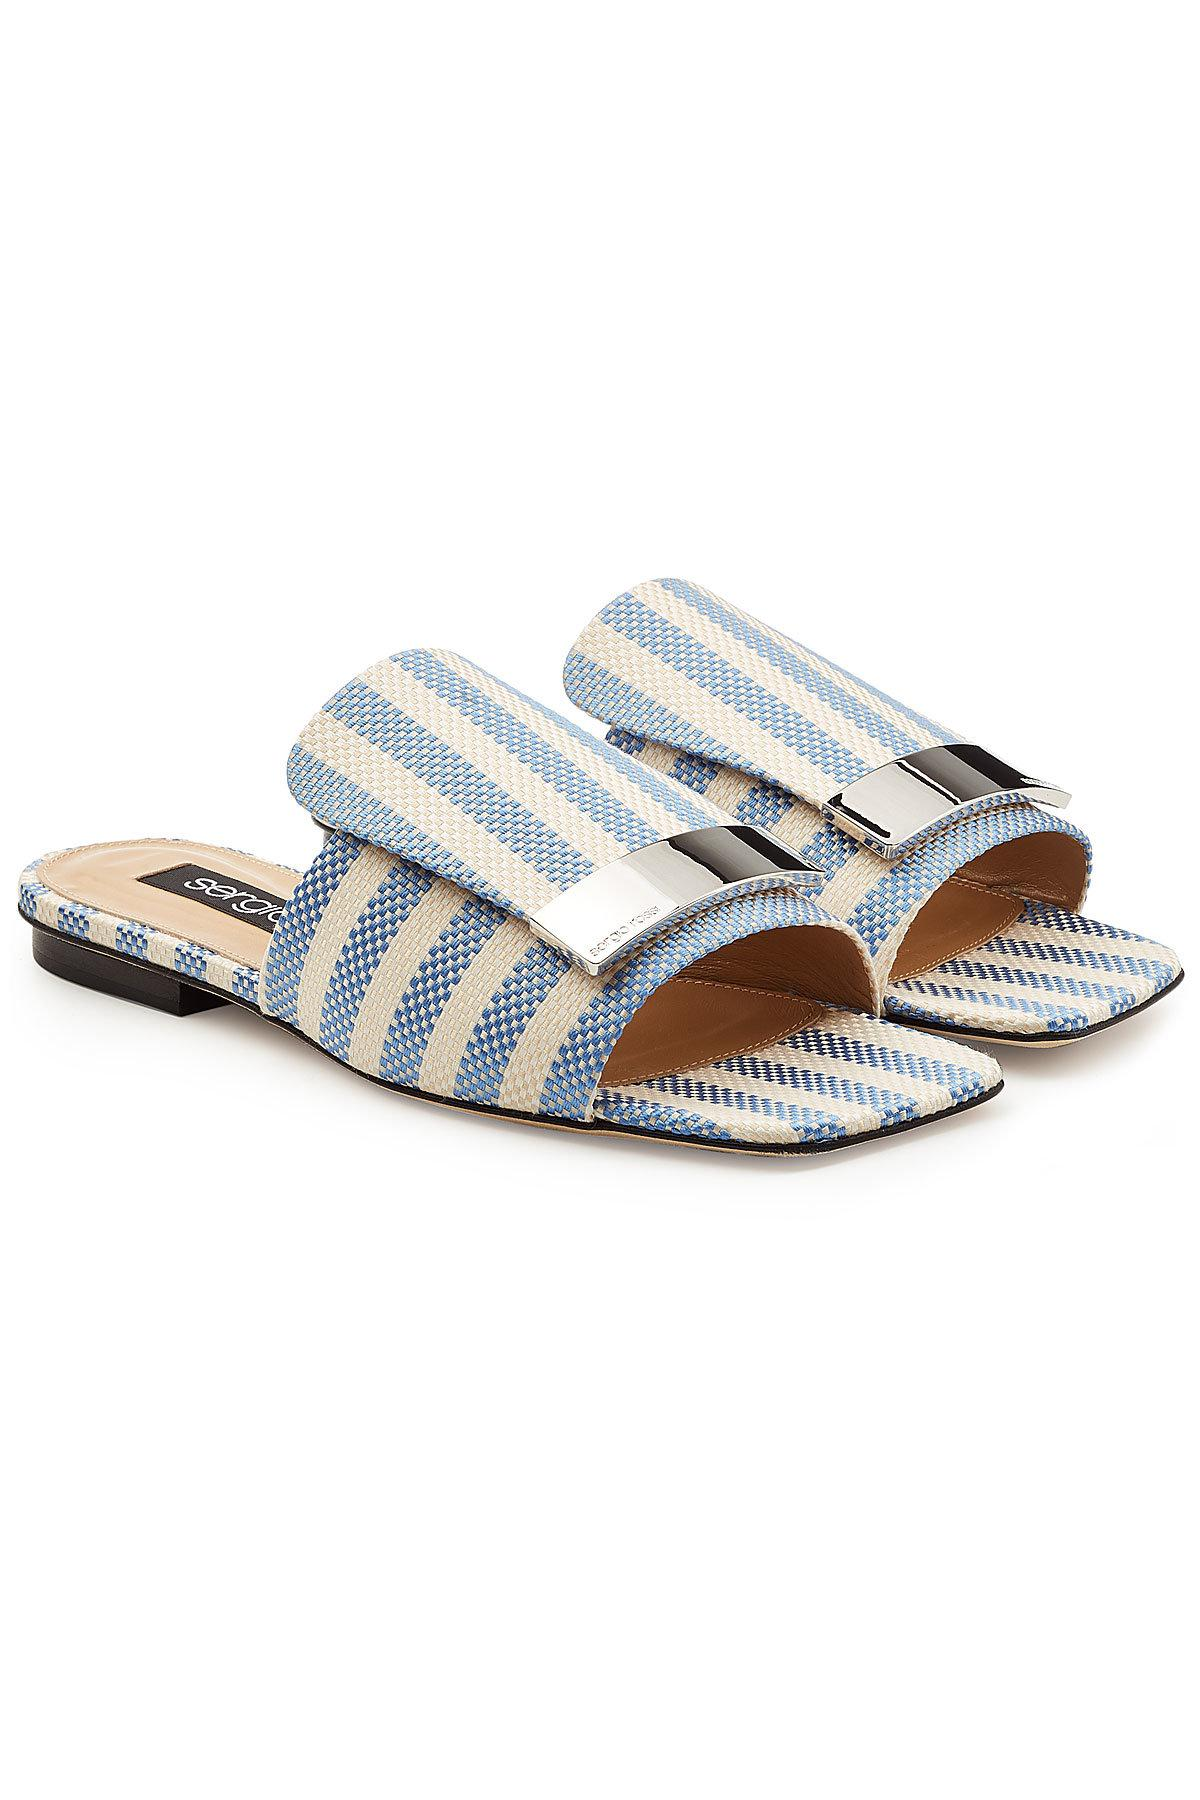 Sergio Rossi Sandals A80380 textile Metal buckle beige isbsgN